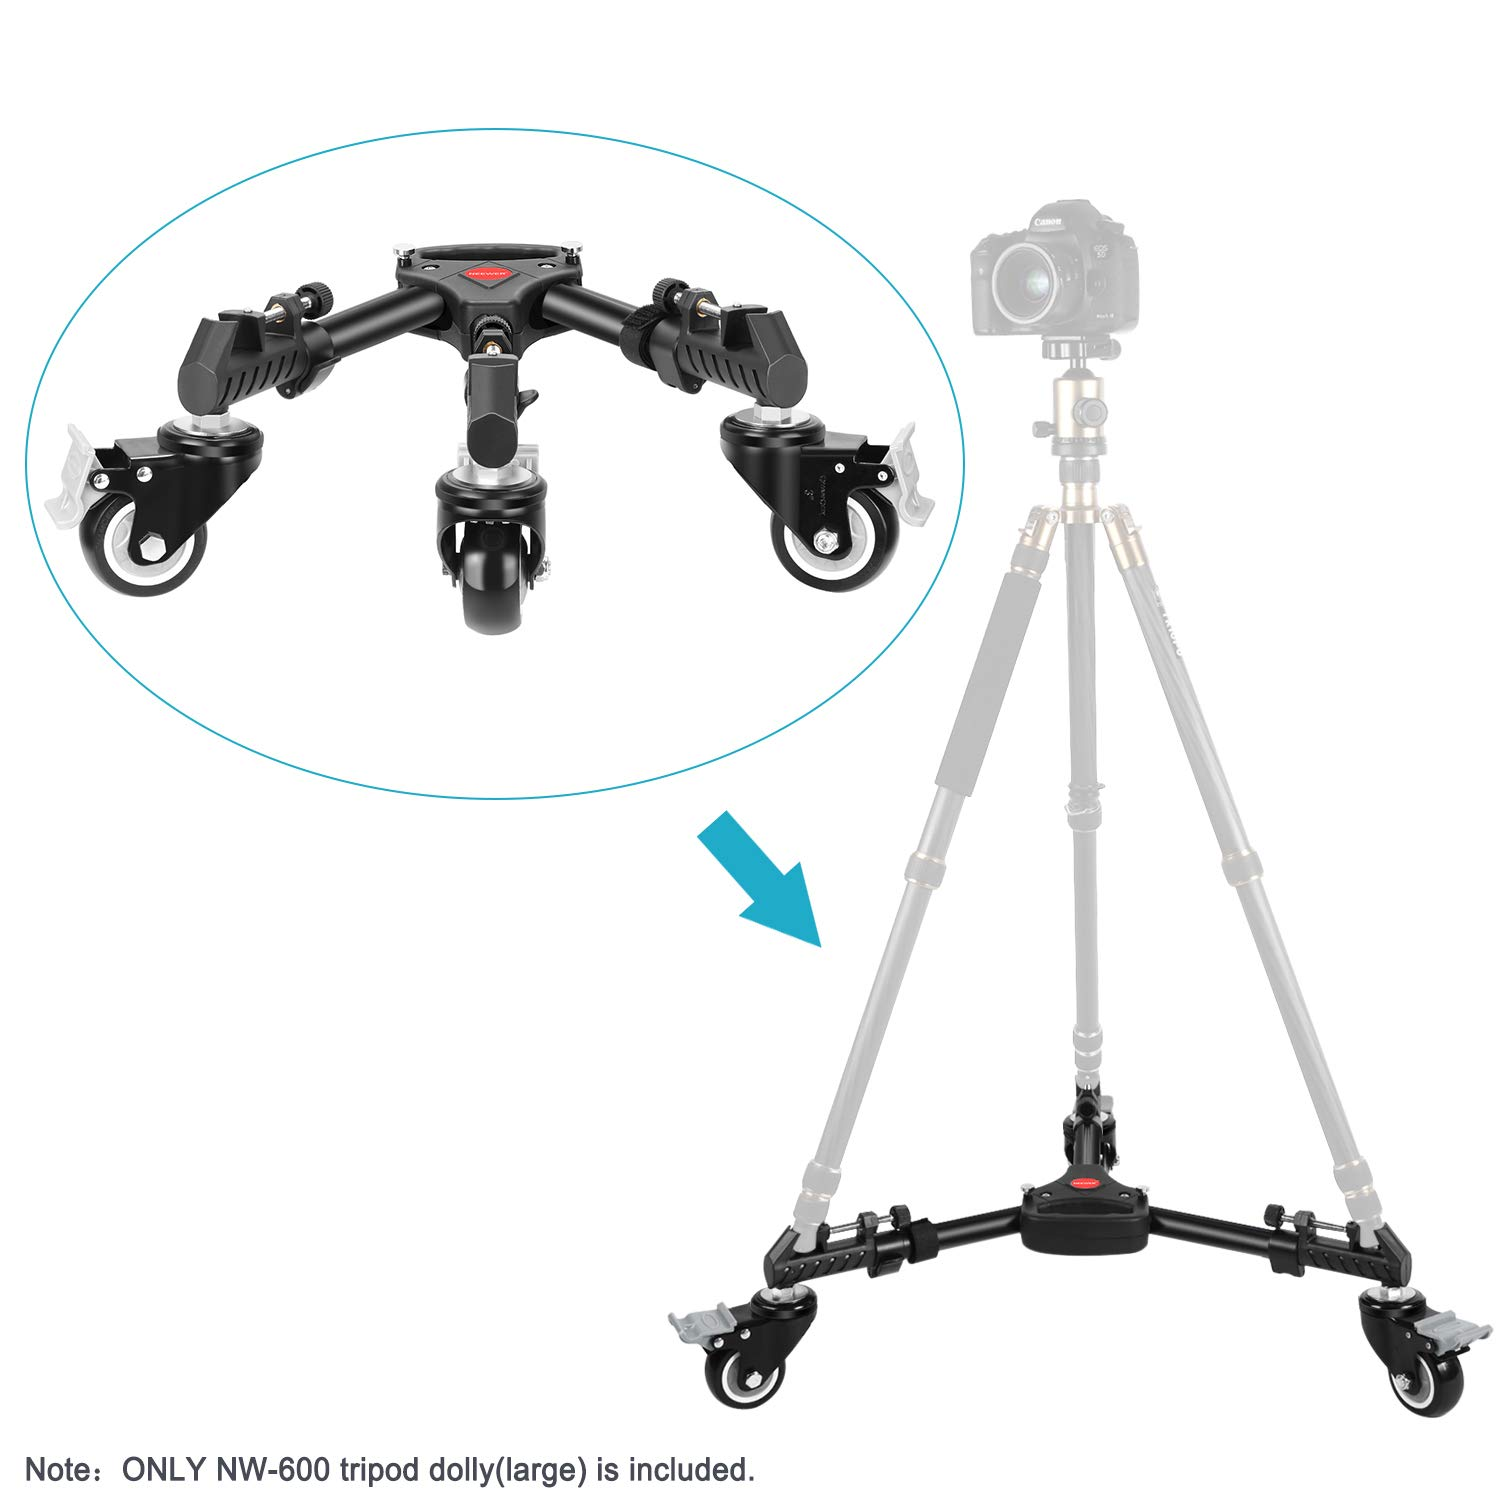 Load up to 50 pounds Neewer Photography Tripod Dolly Adjustable Leg Mounts and Carry Bag for Tripods Heavy Duty with Larger 3-inch Rubber Wheels Light Stands for Photo Video Lighting